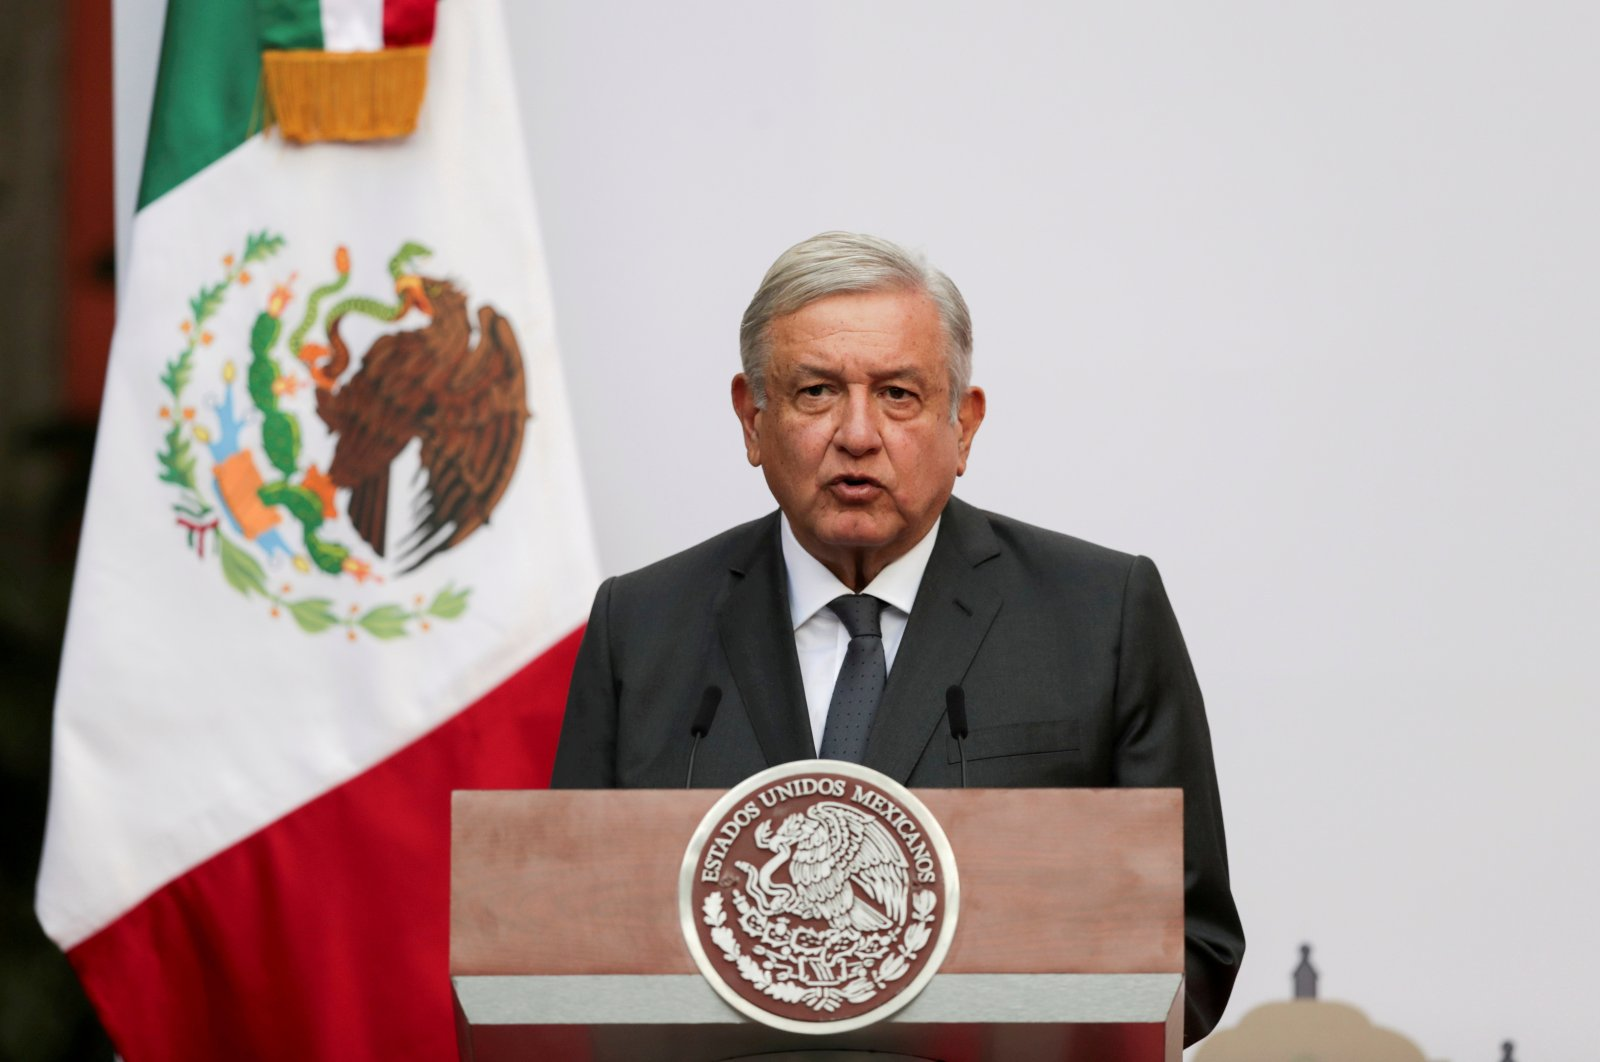 Mexico's President Andres Manuel Lopez Obrador addresses the nation on his second anniversary as the president of Mexico, at the National Palace in Mexico City, Mexico, Dec. 1, 2020. (Reuters Photo)